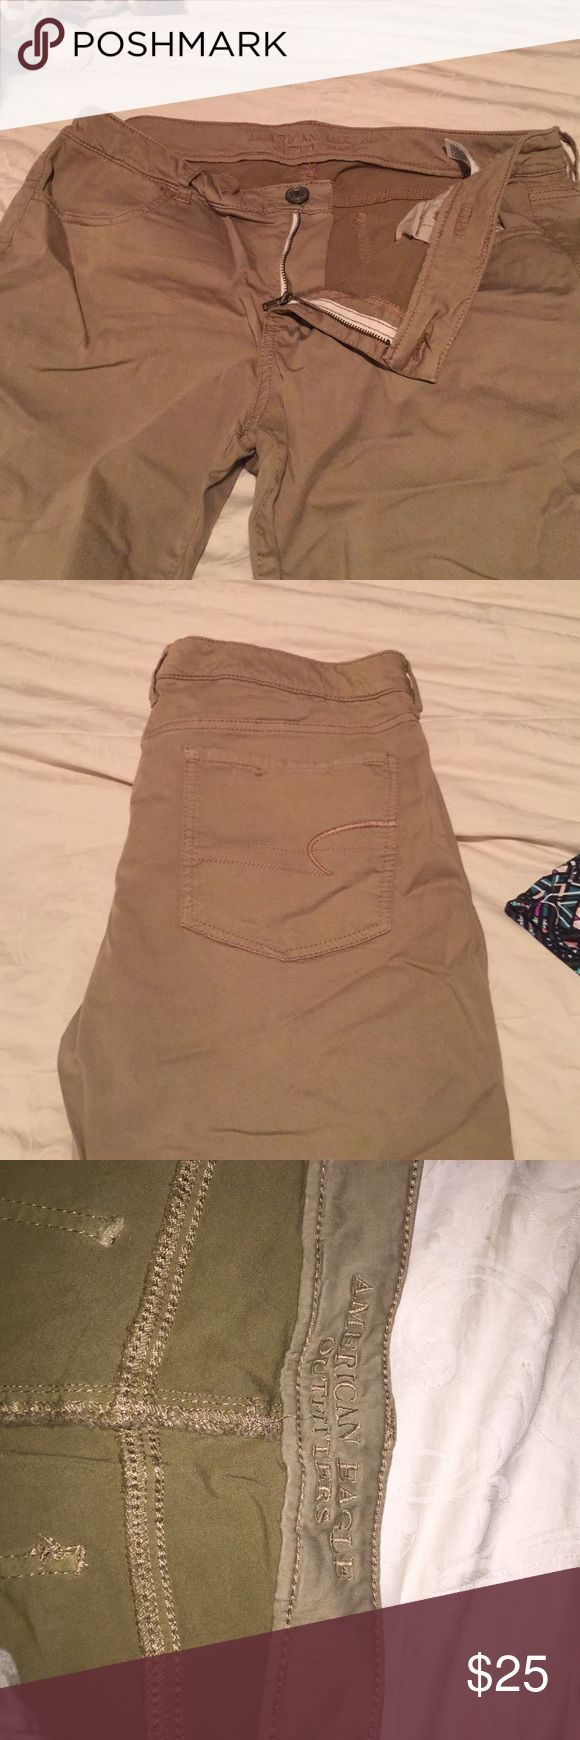 American Eagle khaki jeggings - size 16 These khaki jeggings are chino material, NOT denim. They are great for a casual day at work or on the weekend! Size 16. Never worn! American Eagle Outfitters Jeans Skinny